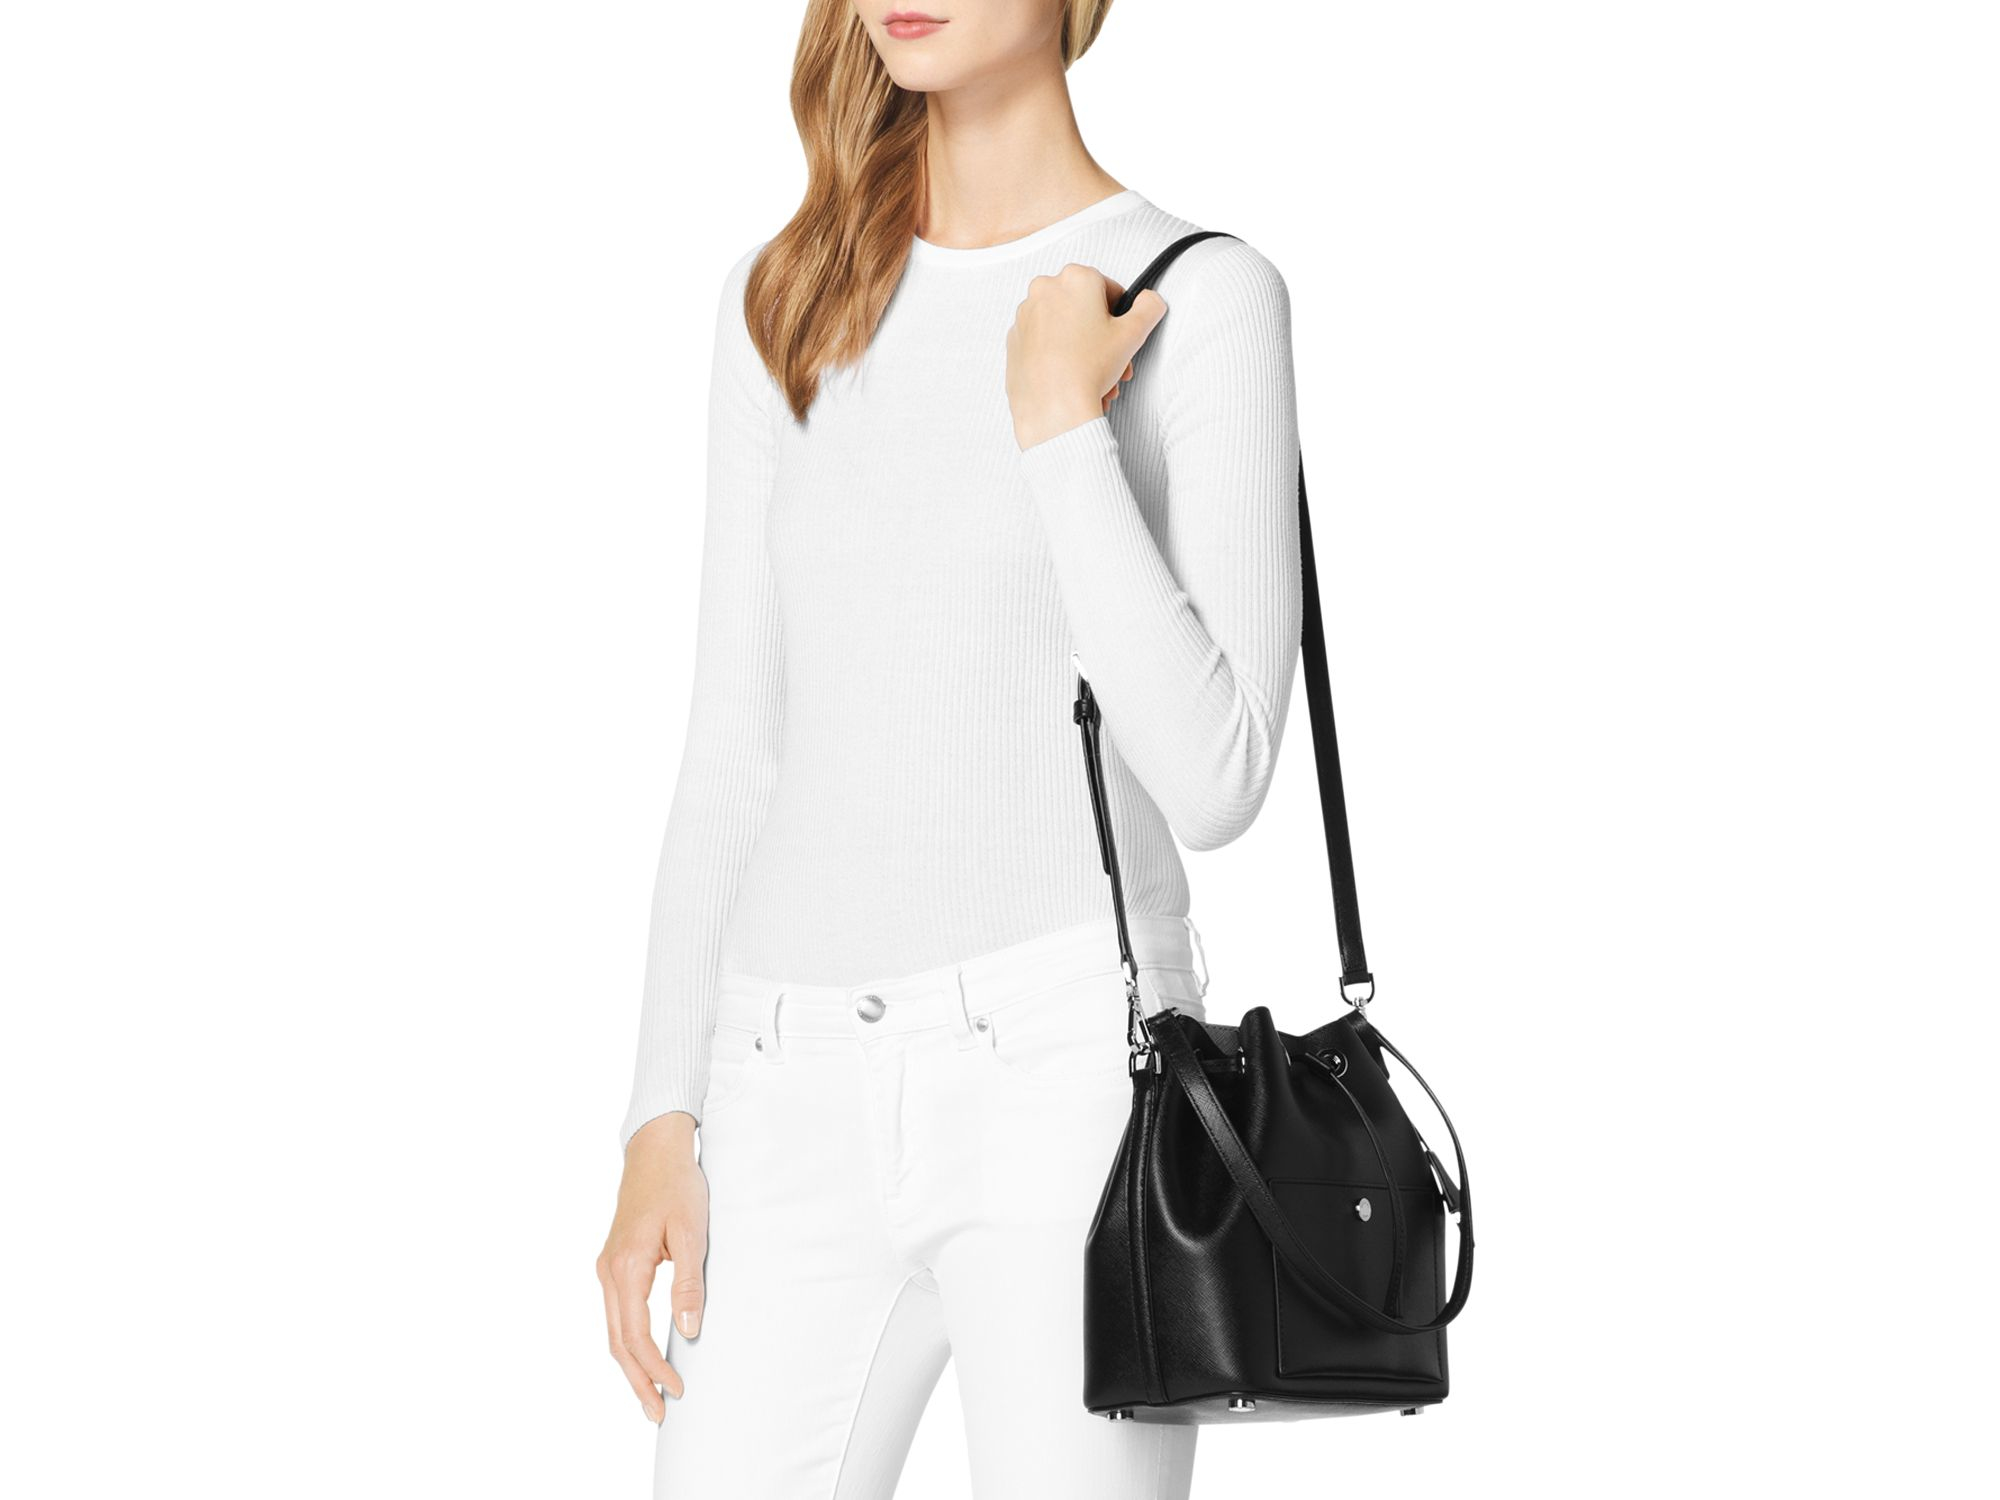 84707a59b8cc Gallery. Previously sold at: Bloomingdale's · Women's Bucket Bags